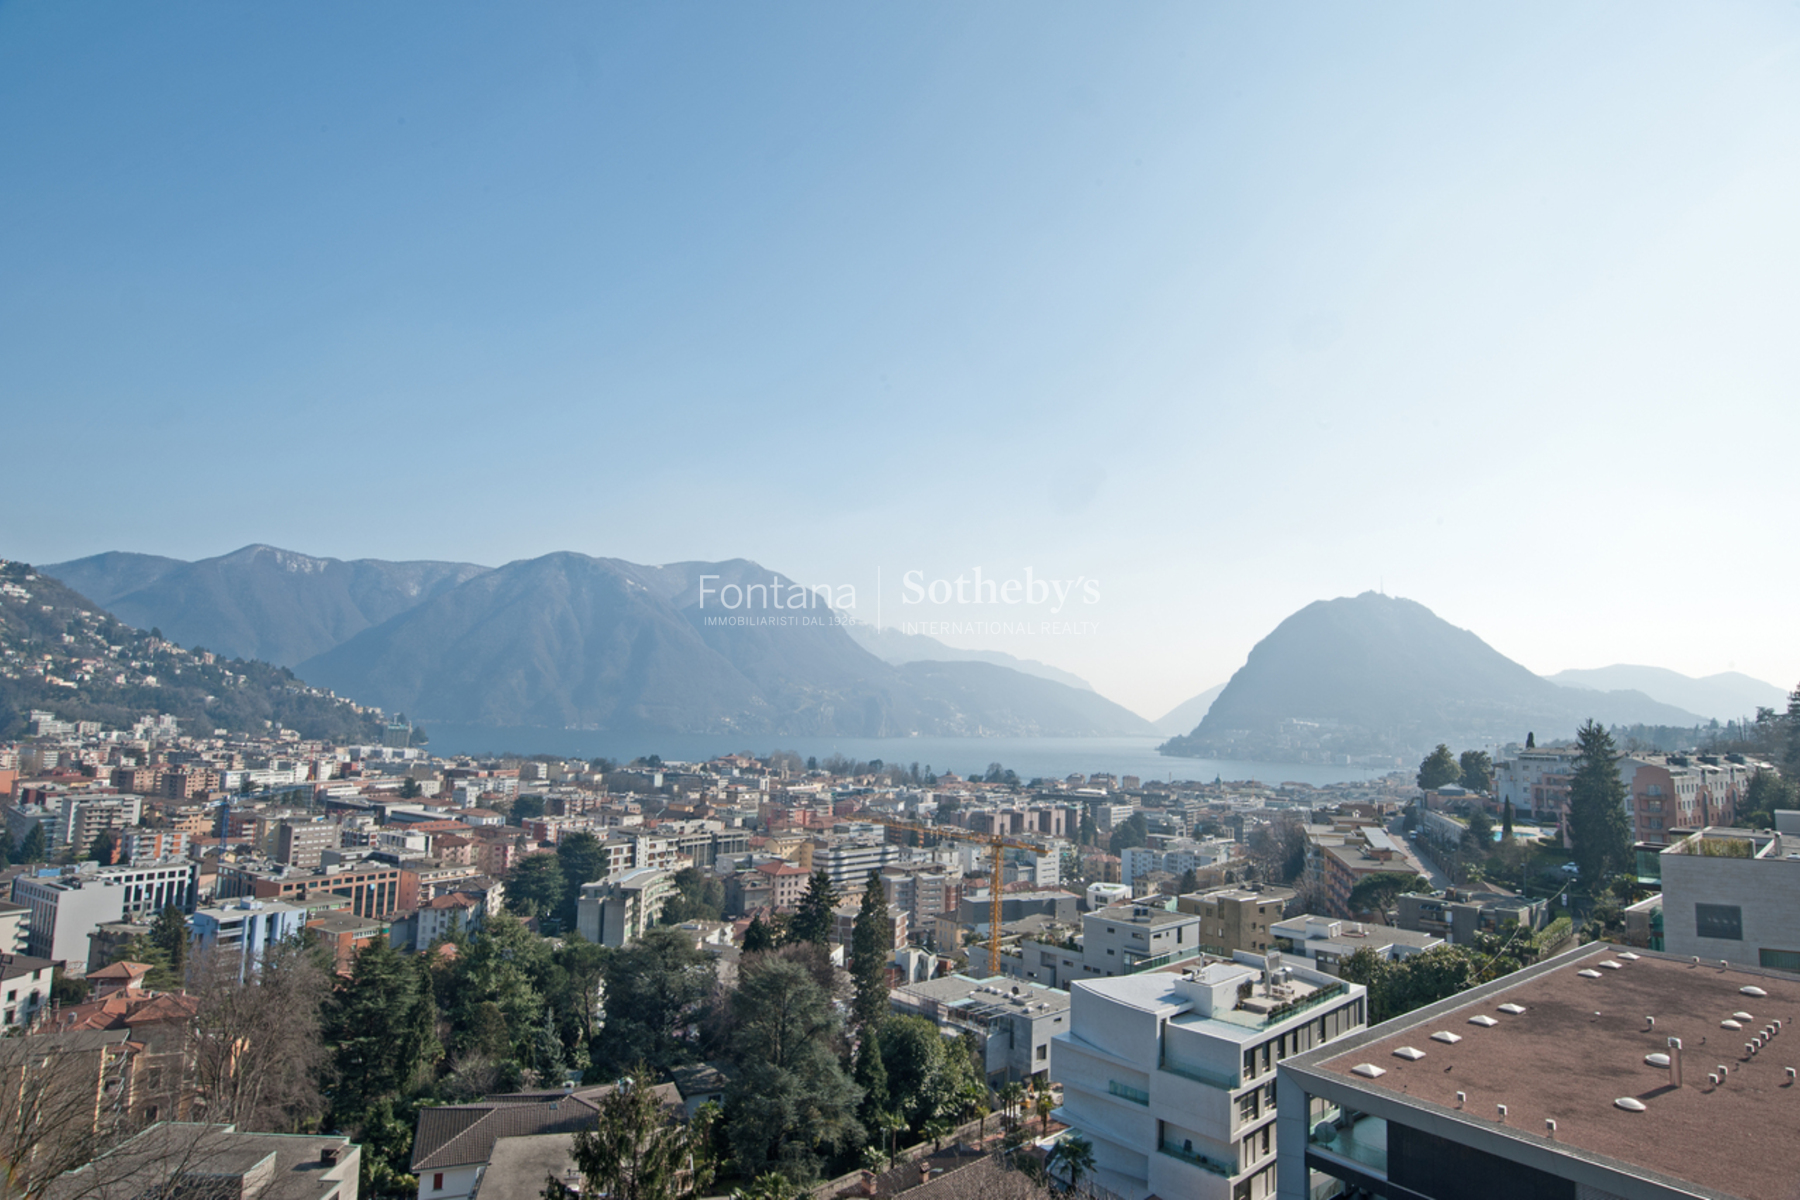 Apartamento por un Venta en Elegant penthouse with a beautiful lake view Lugano Lugano, Ticino, 6900 Suiza